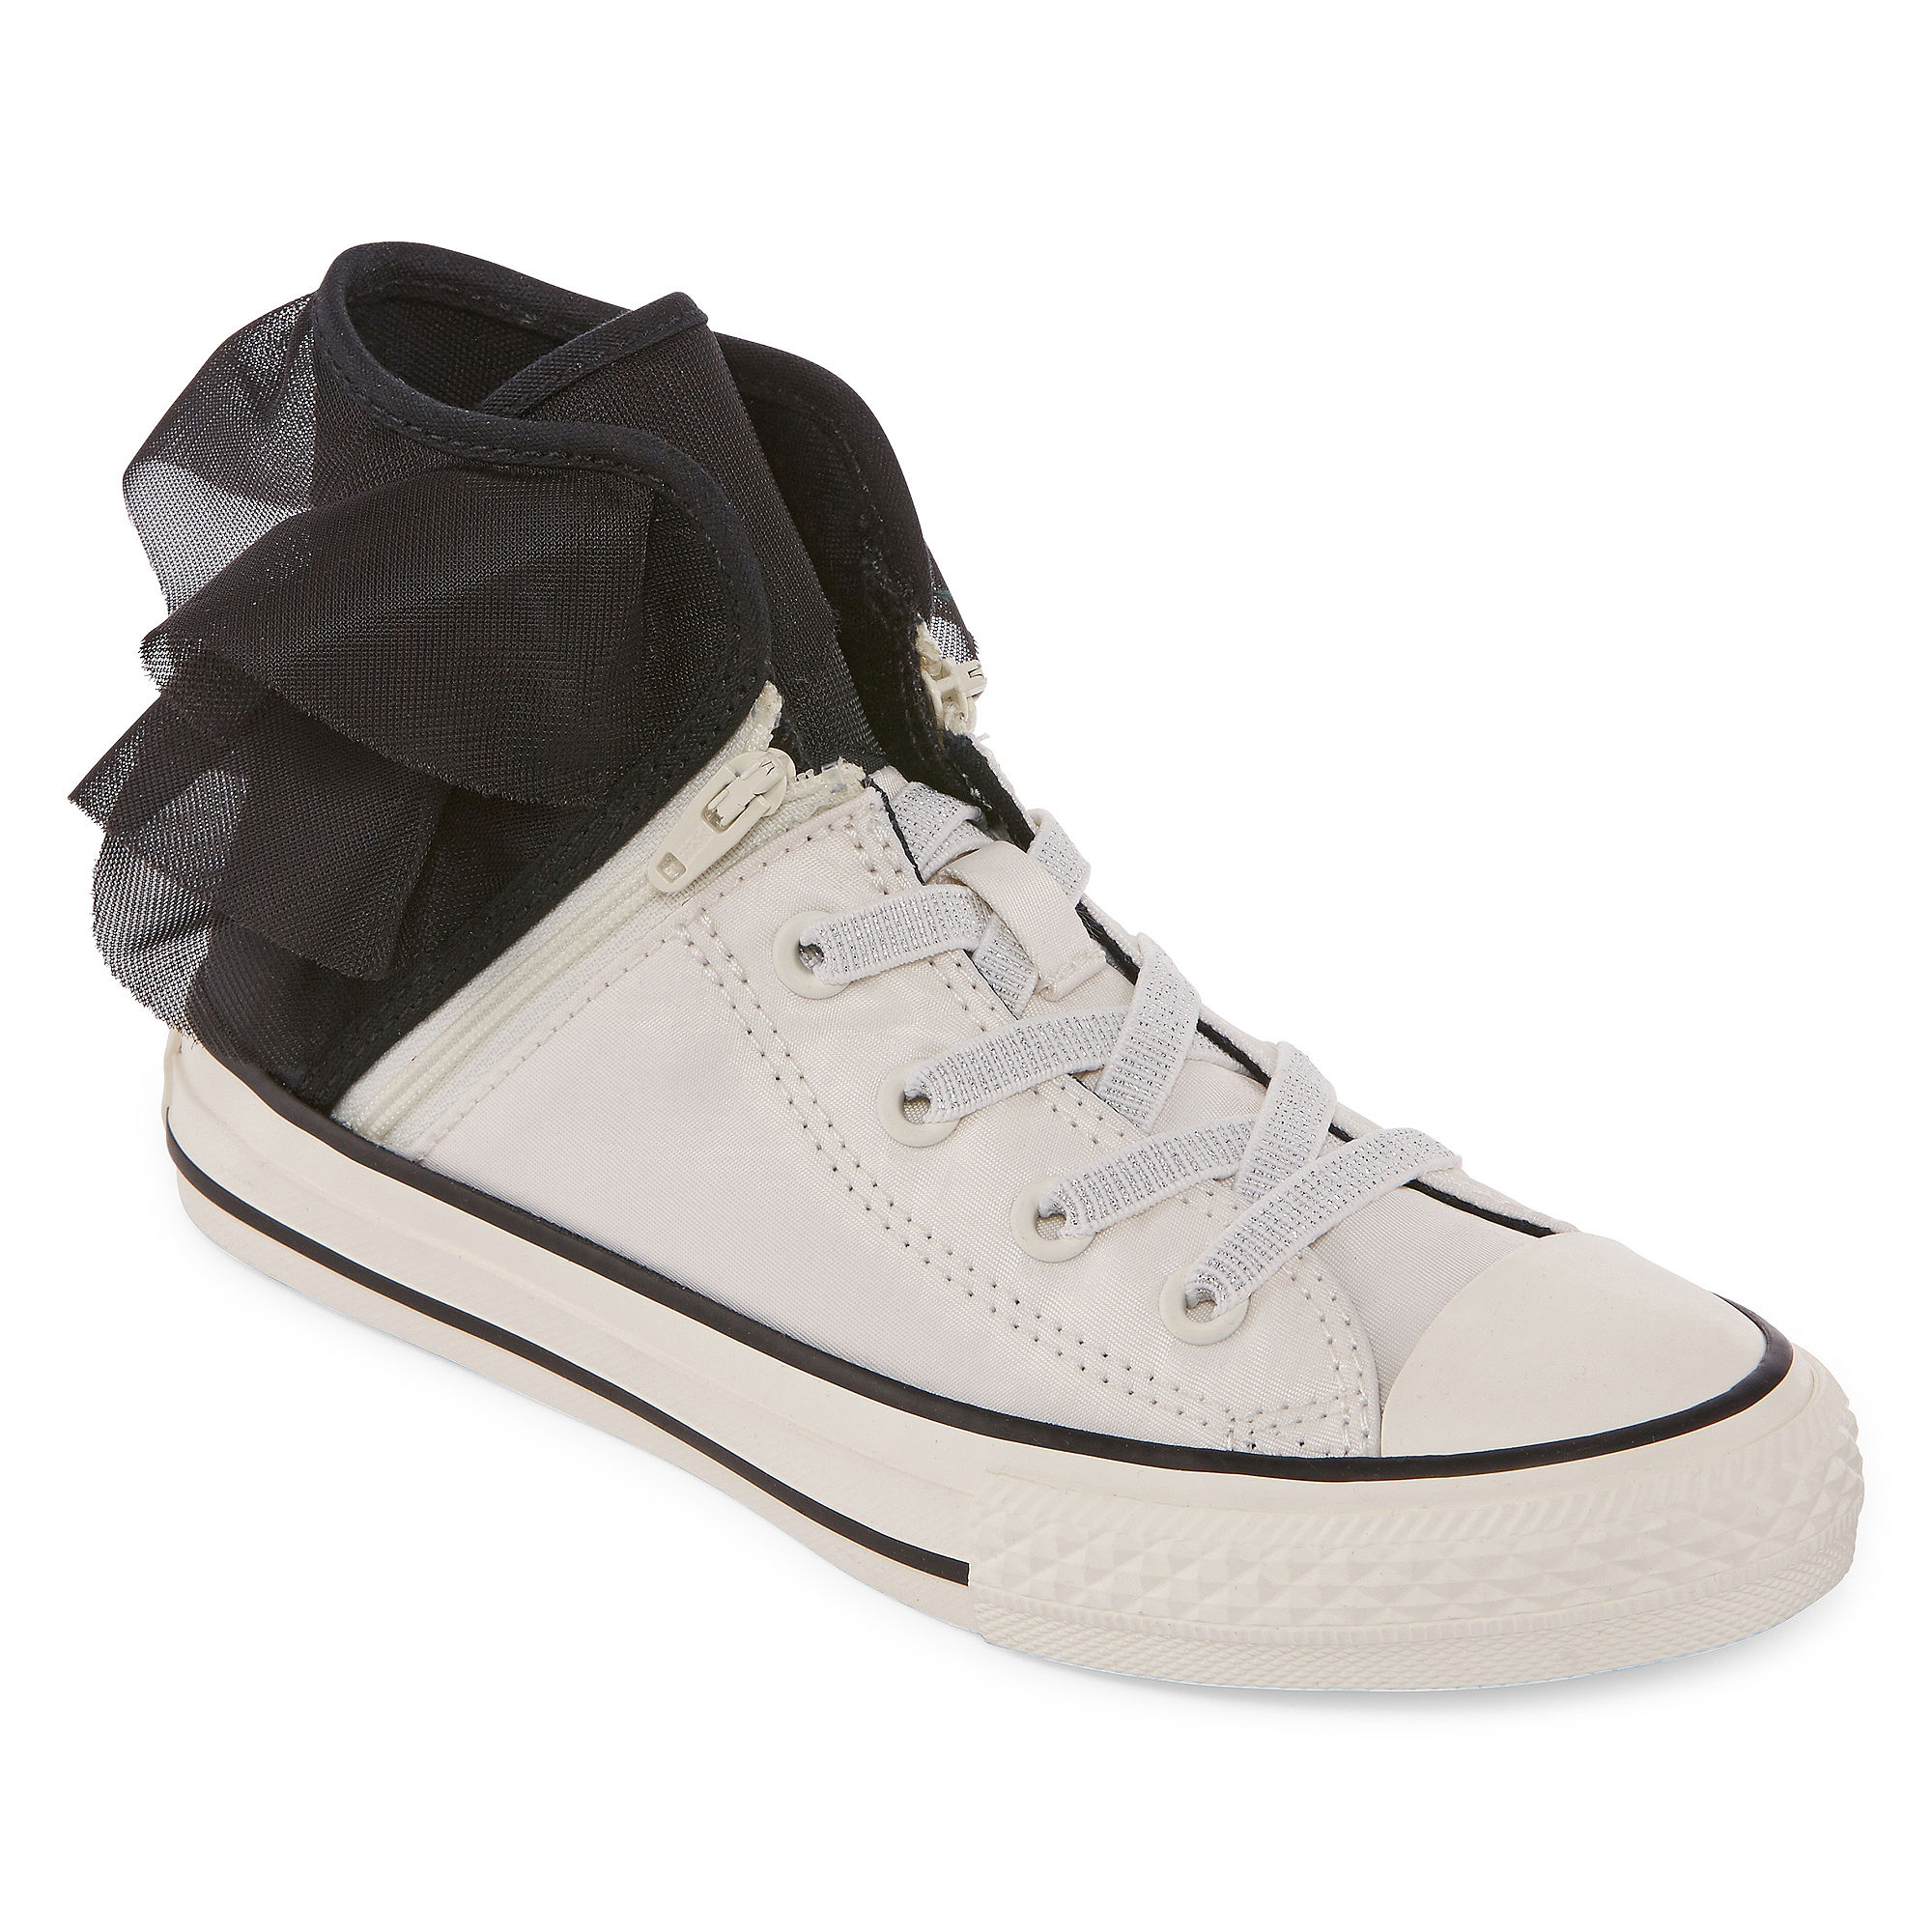 Converse Chuck Taylor All Star Block Party Girls Sneakers - Little Kids/Big Kids